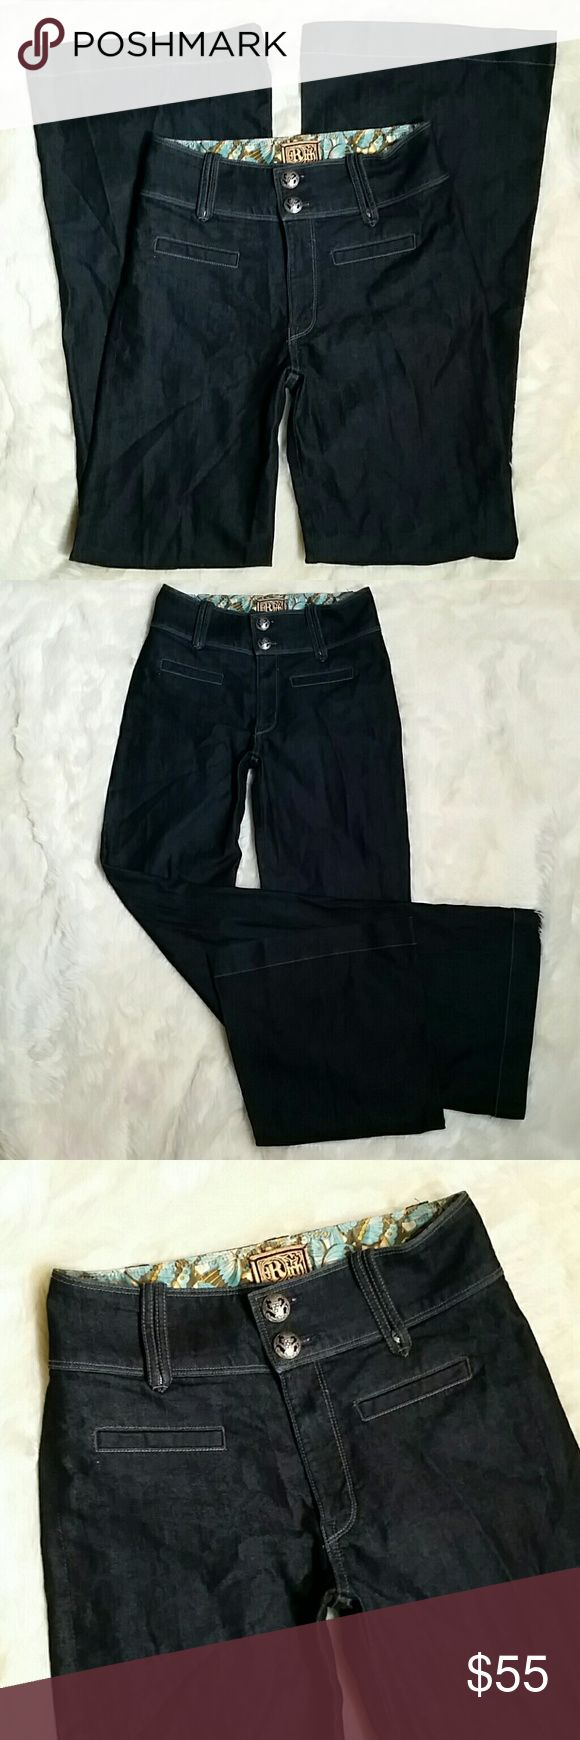 "Rich & Skinny High Waisted Wide Leg Trouser Sz 27 Rich & Skinny High Waisted Wide Leg Trouser Jeans, size 27. Dark blue clear rinse. Faux slit pockets on the front and back. Double button and zip fly. Pre-owned in great condition with no rips, holes, tears or stains...looks like new! Long original 35"" inseam and clean hems. 70% cotton and 30% PES (polyester) just a hint of stretch. Size 27.  Measurements  Waist 14.5"" Rise 10"" (High Waisted) Inseam 35"" Leg opening 12.5"" Rich & Skinny Jeans…"